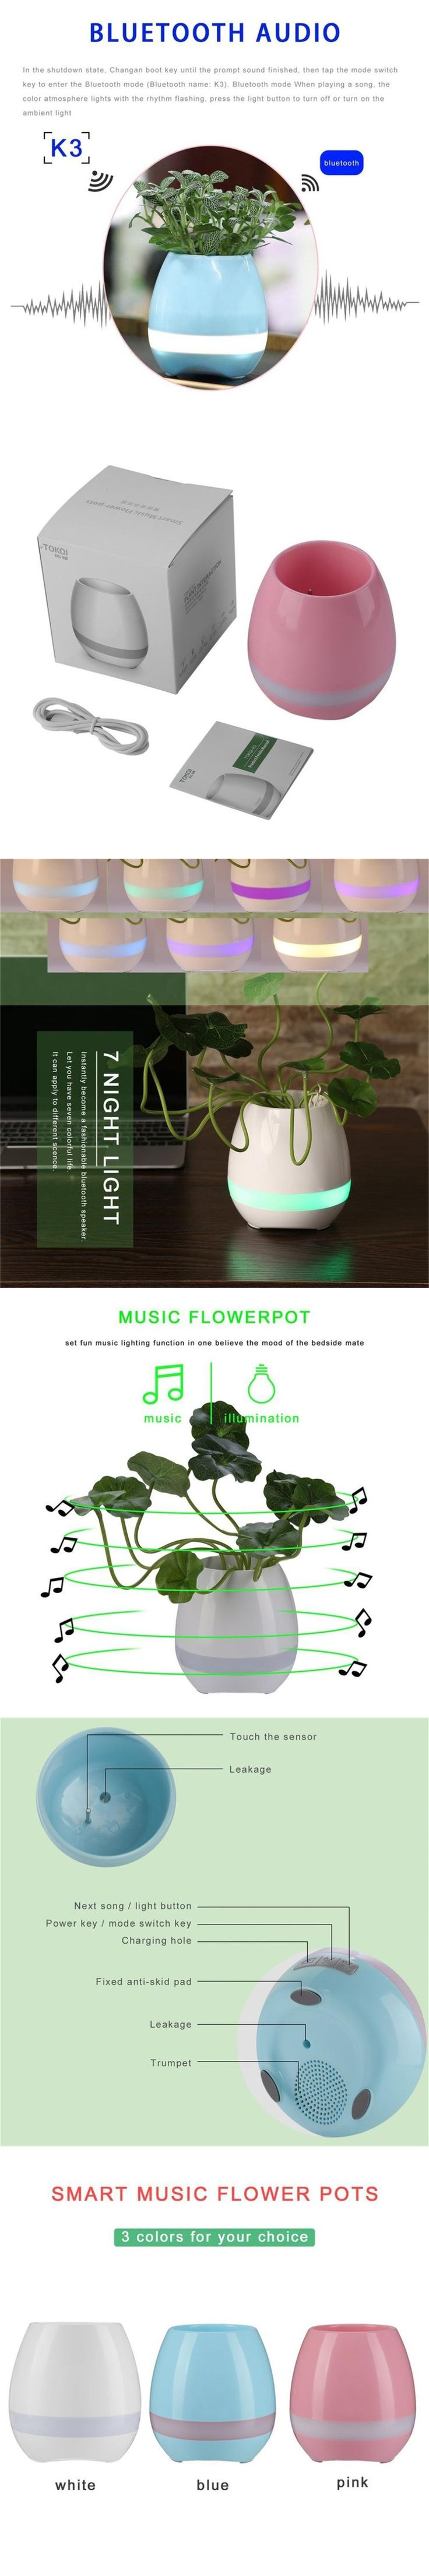 Plastic Smart  Music Flower Pots Bluetooth Speaker Decoration Planter Night Light Touch Sensors Stress Relief Toy for Child Gift